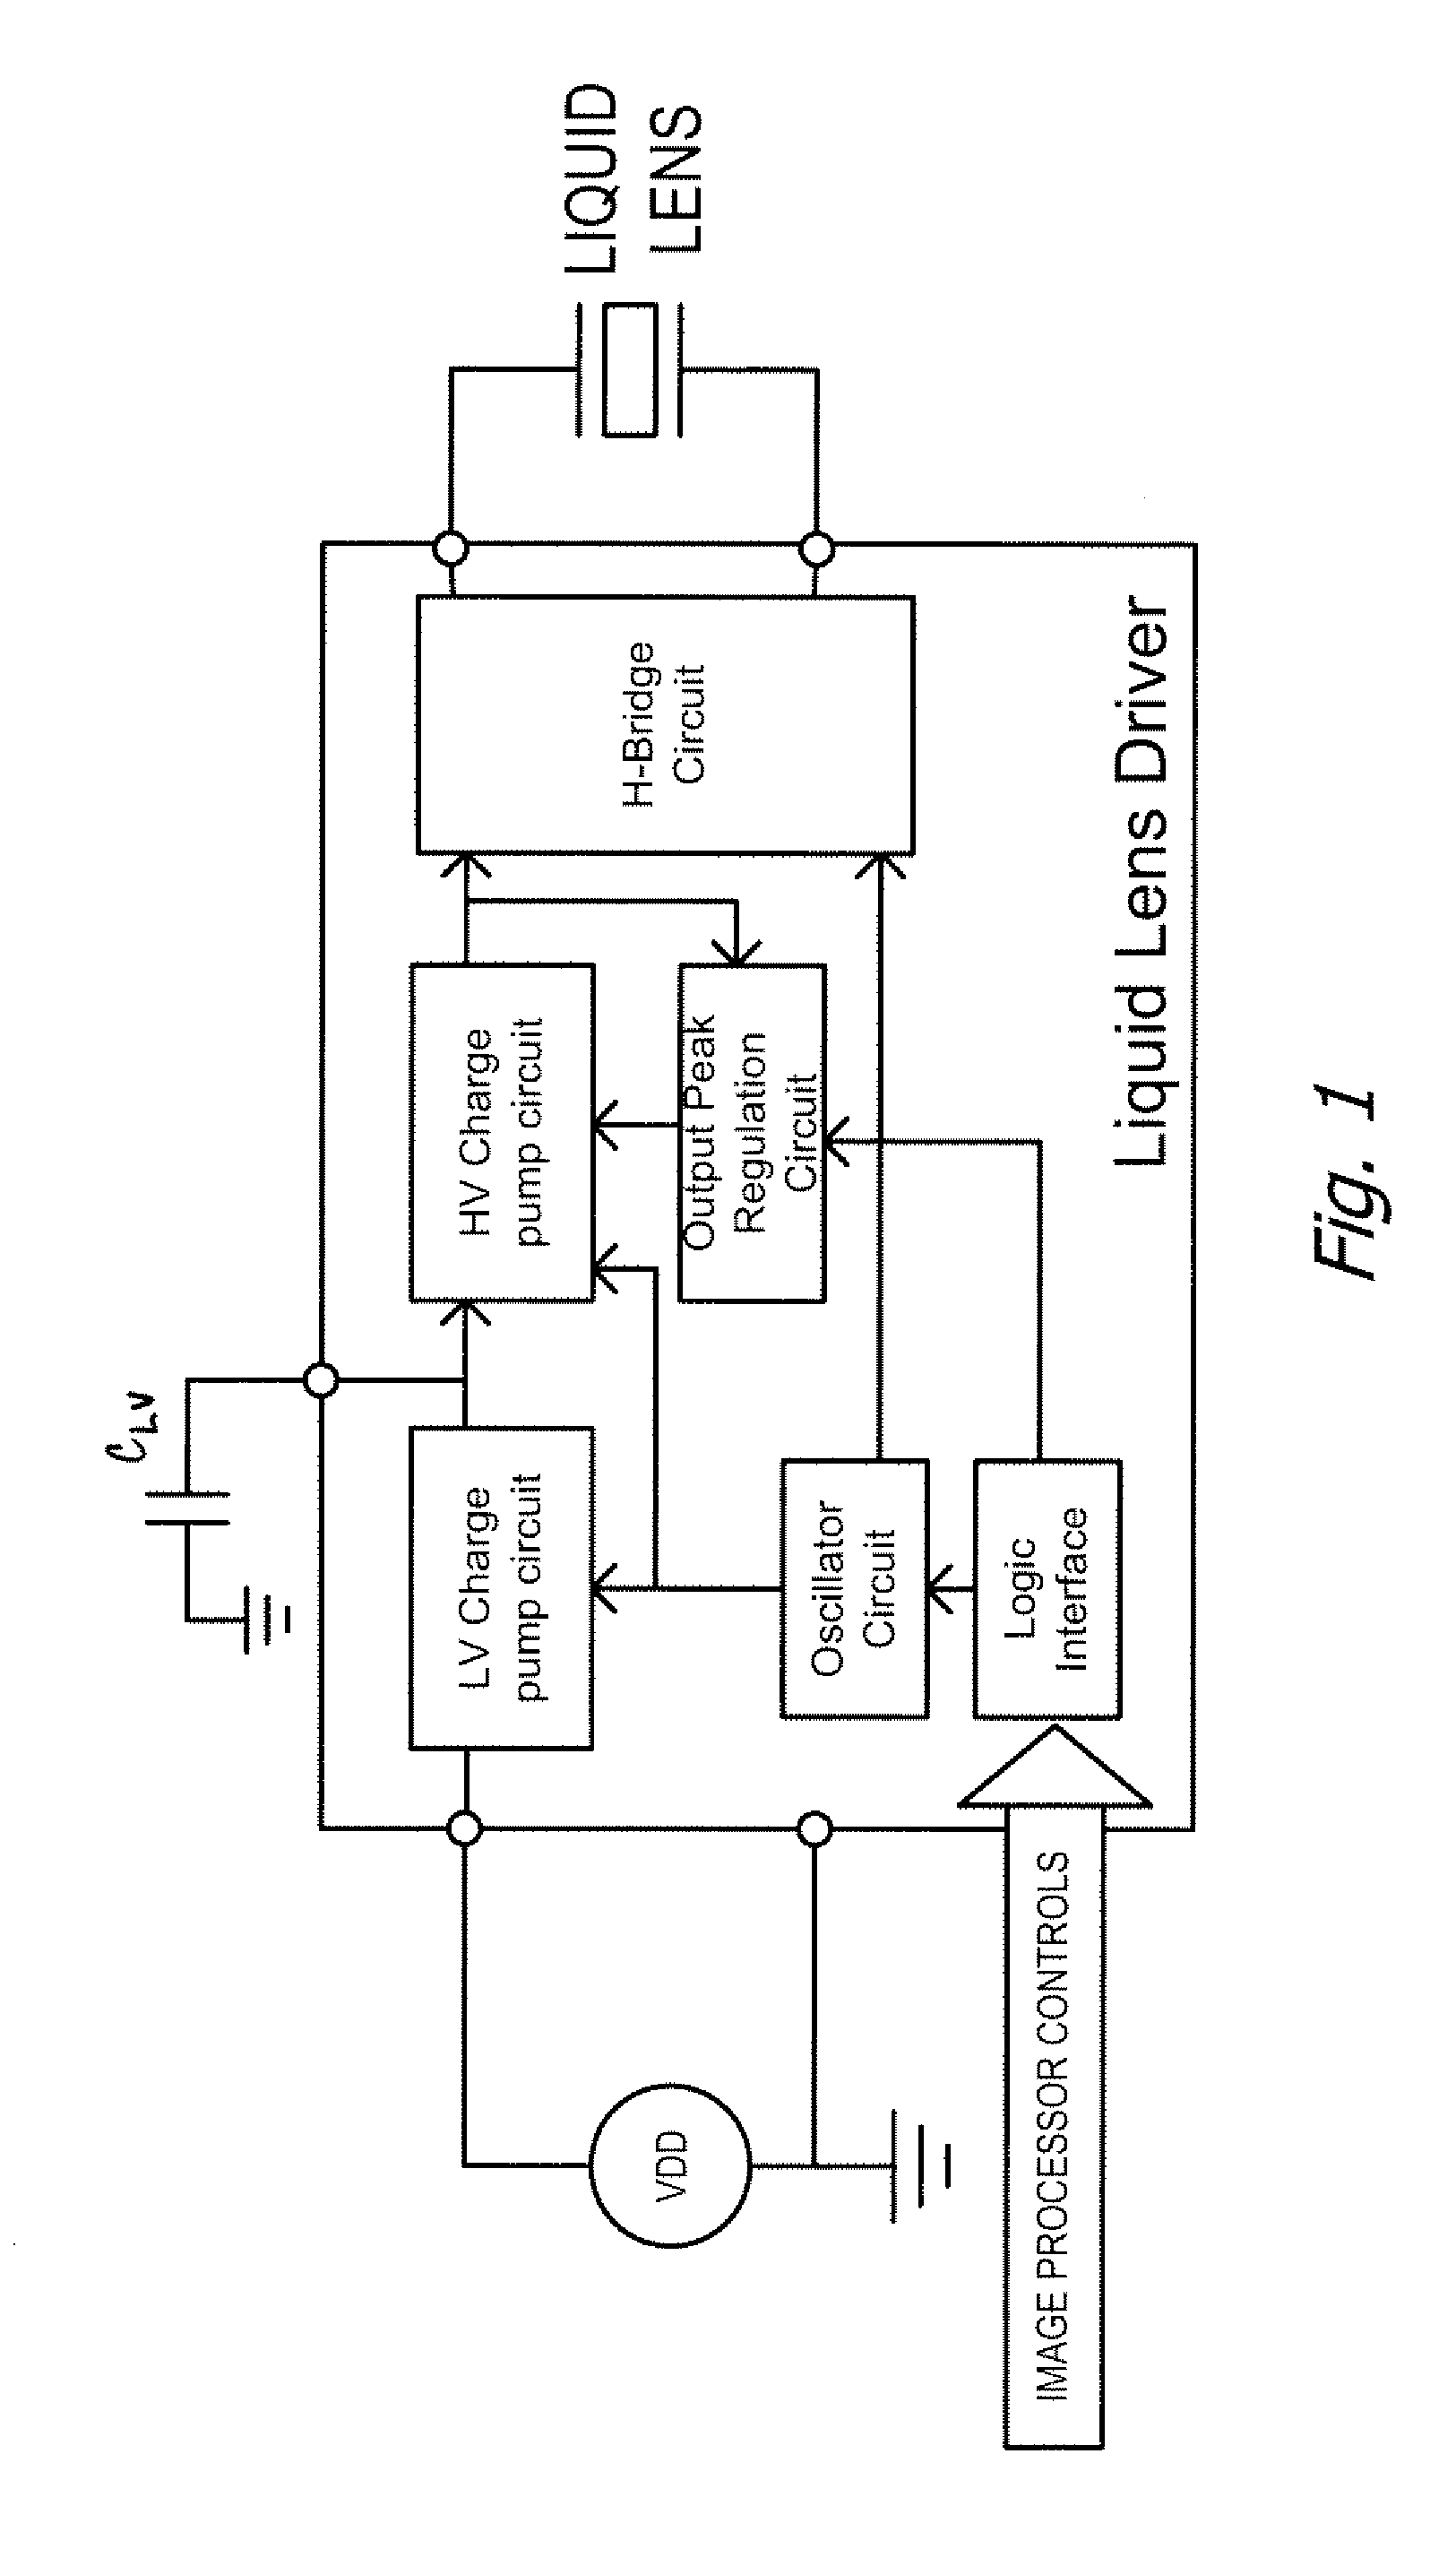 Patent Us7898302 Compact Integrated Circuit Solutions For Driving H Bridge Design Drawing